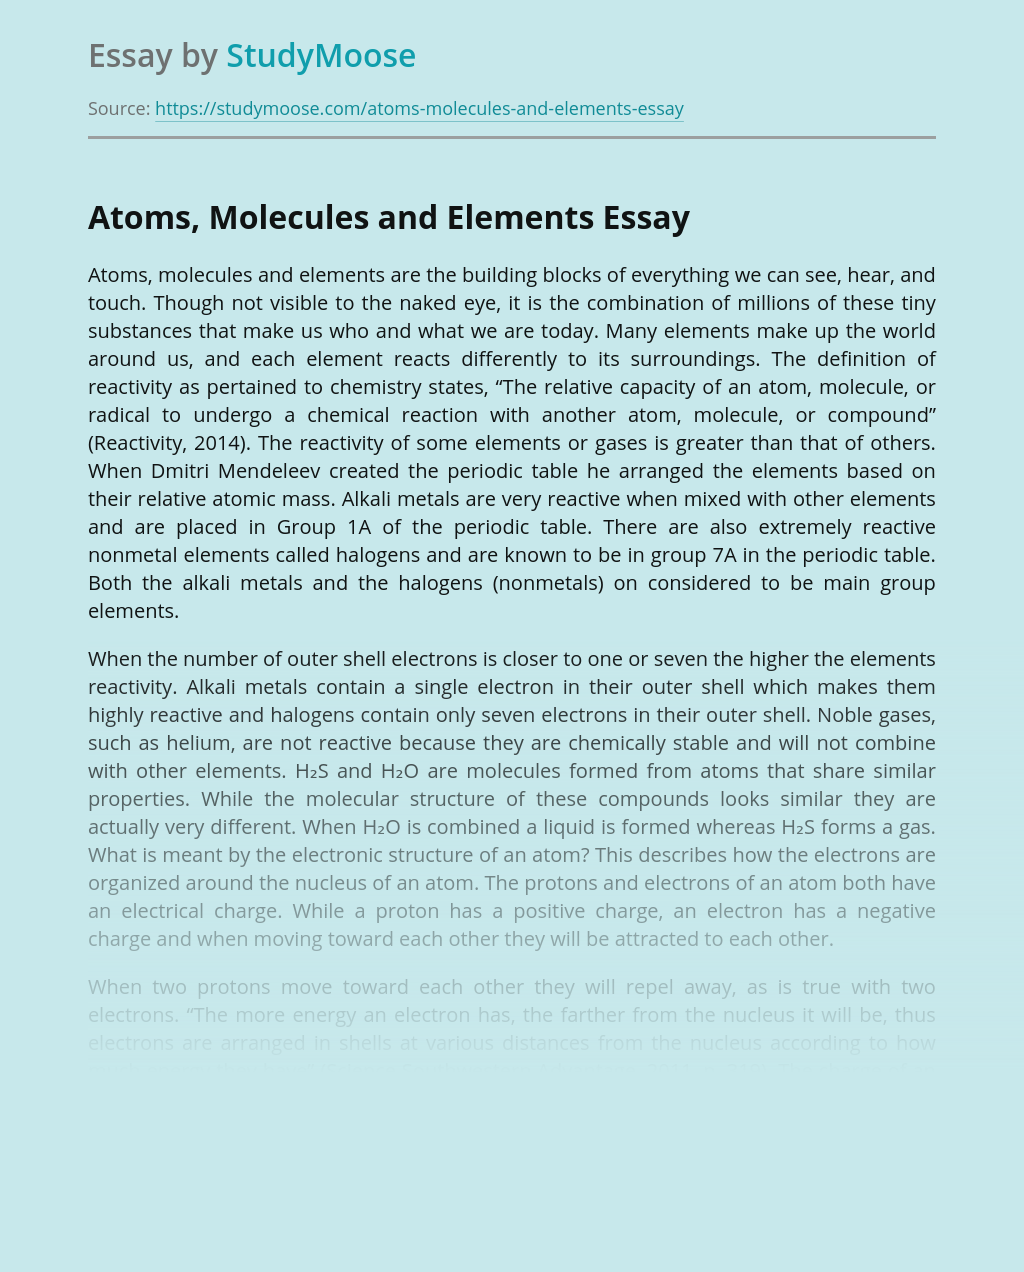 Atoms, Molecules and Elements